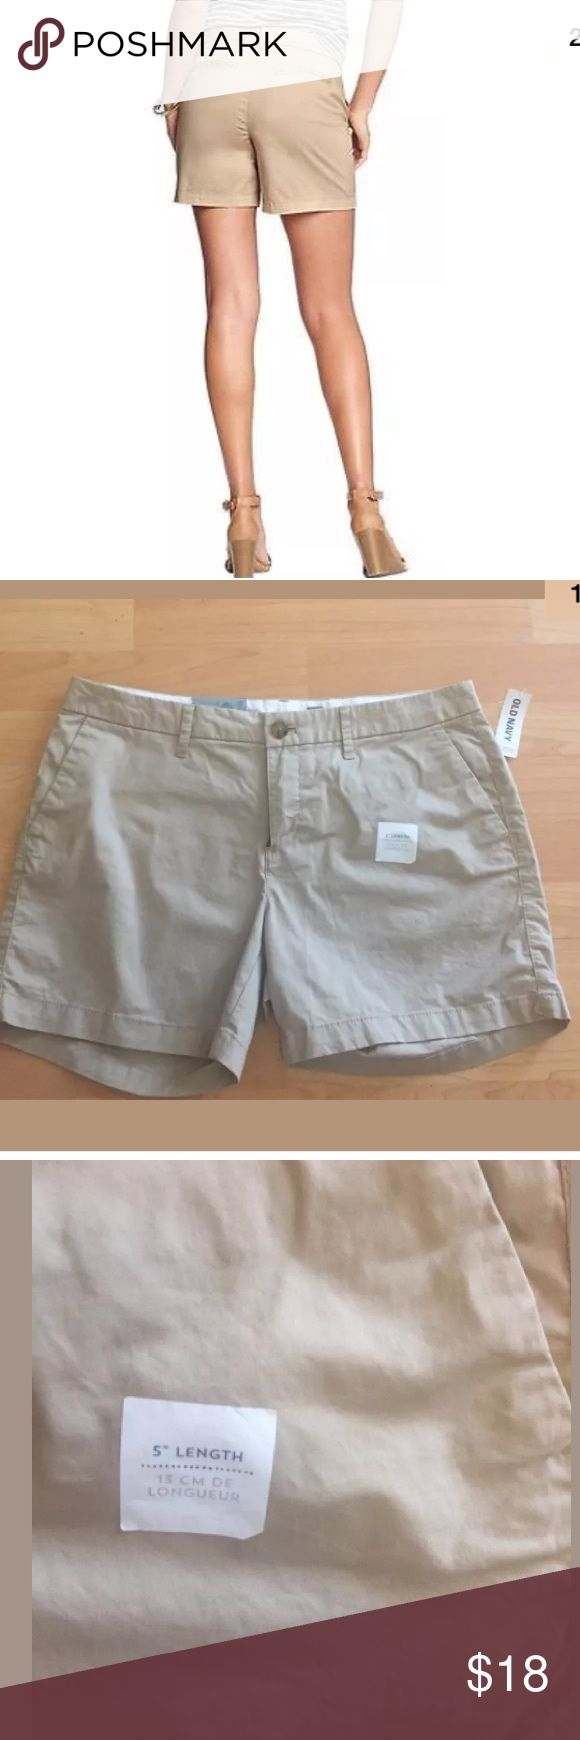 """NEW Old Navy Khaki shorts size 8 Old navy Women's shorts  Size 8  Khaki color  Cotton/spandex  5"""" length  Waist 32""""  New with tags! Old Navy Shorts"""